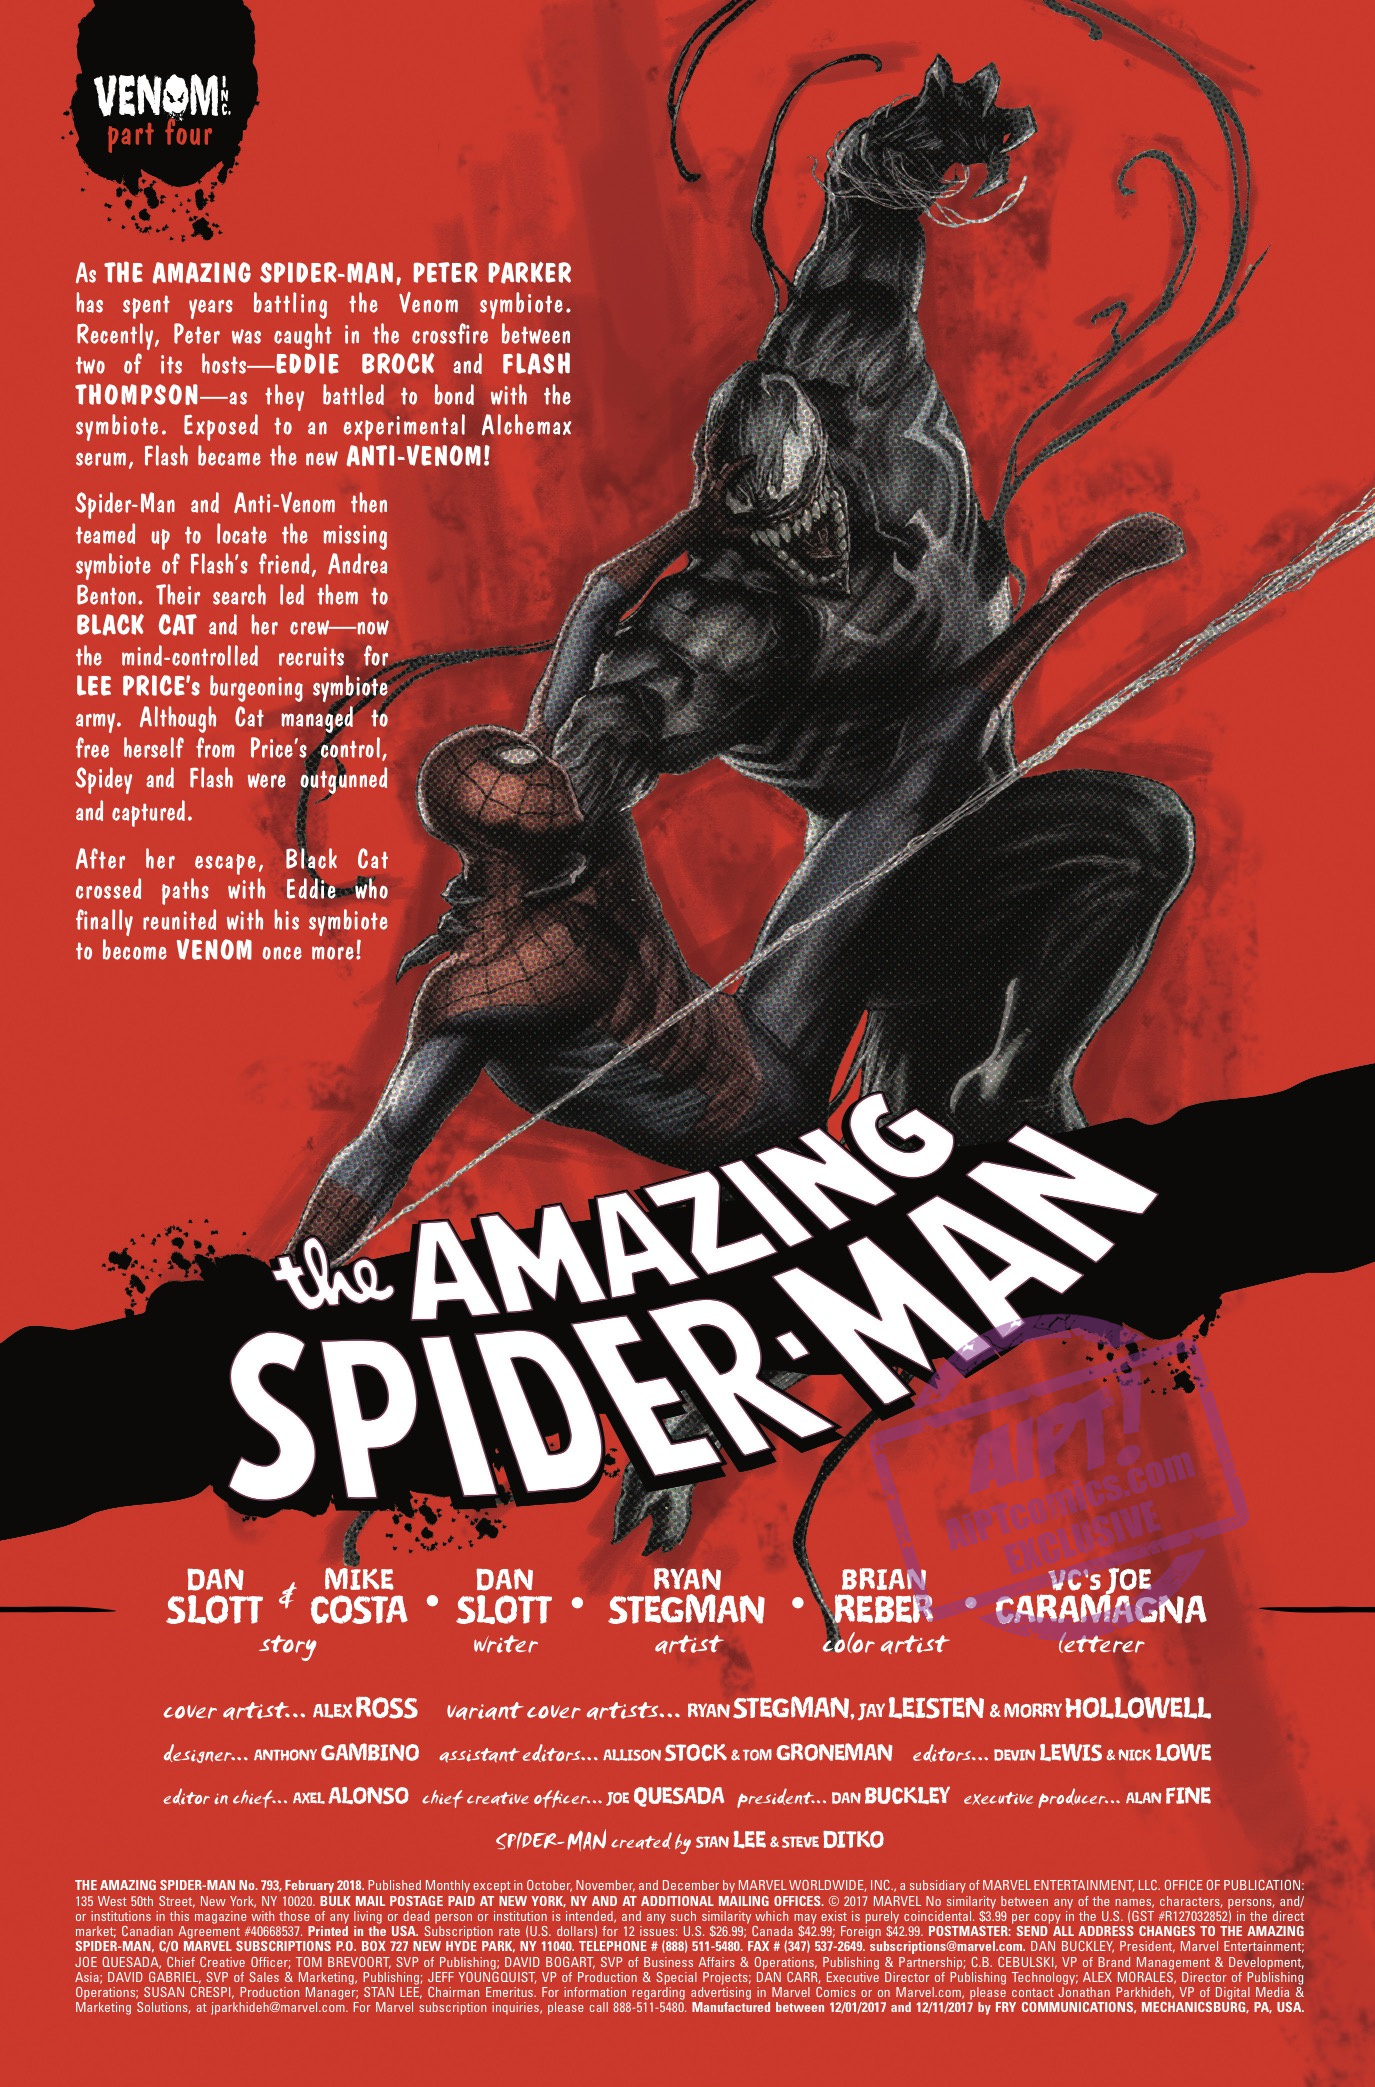 Amazing Spider-Man #793 Review